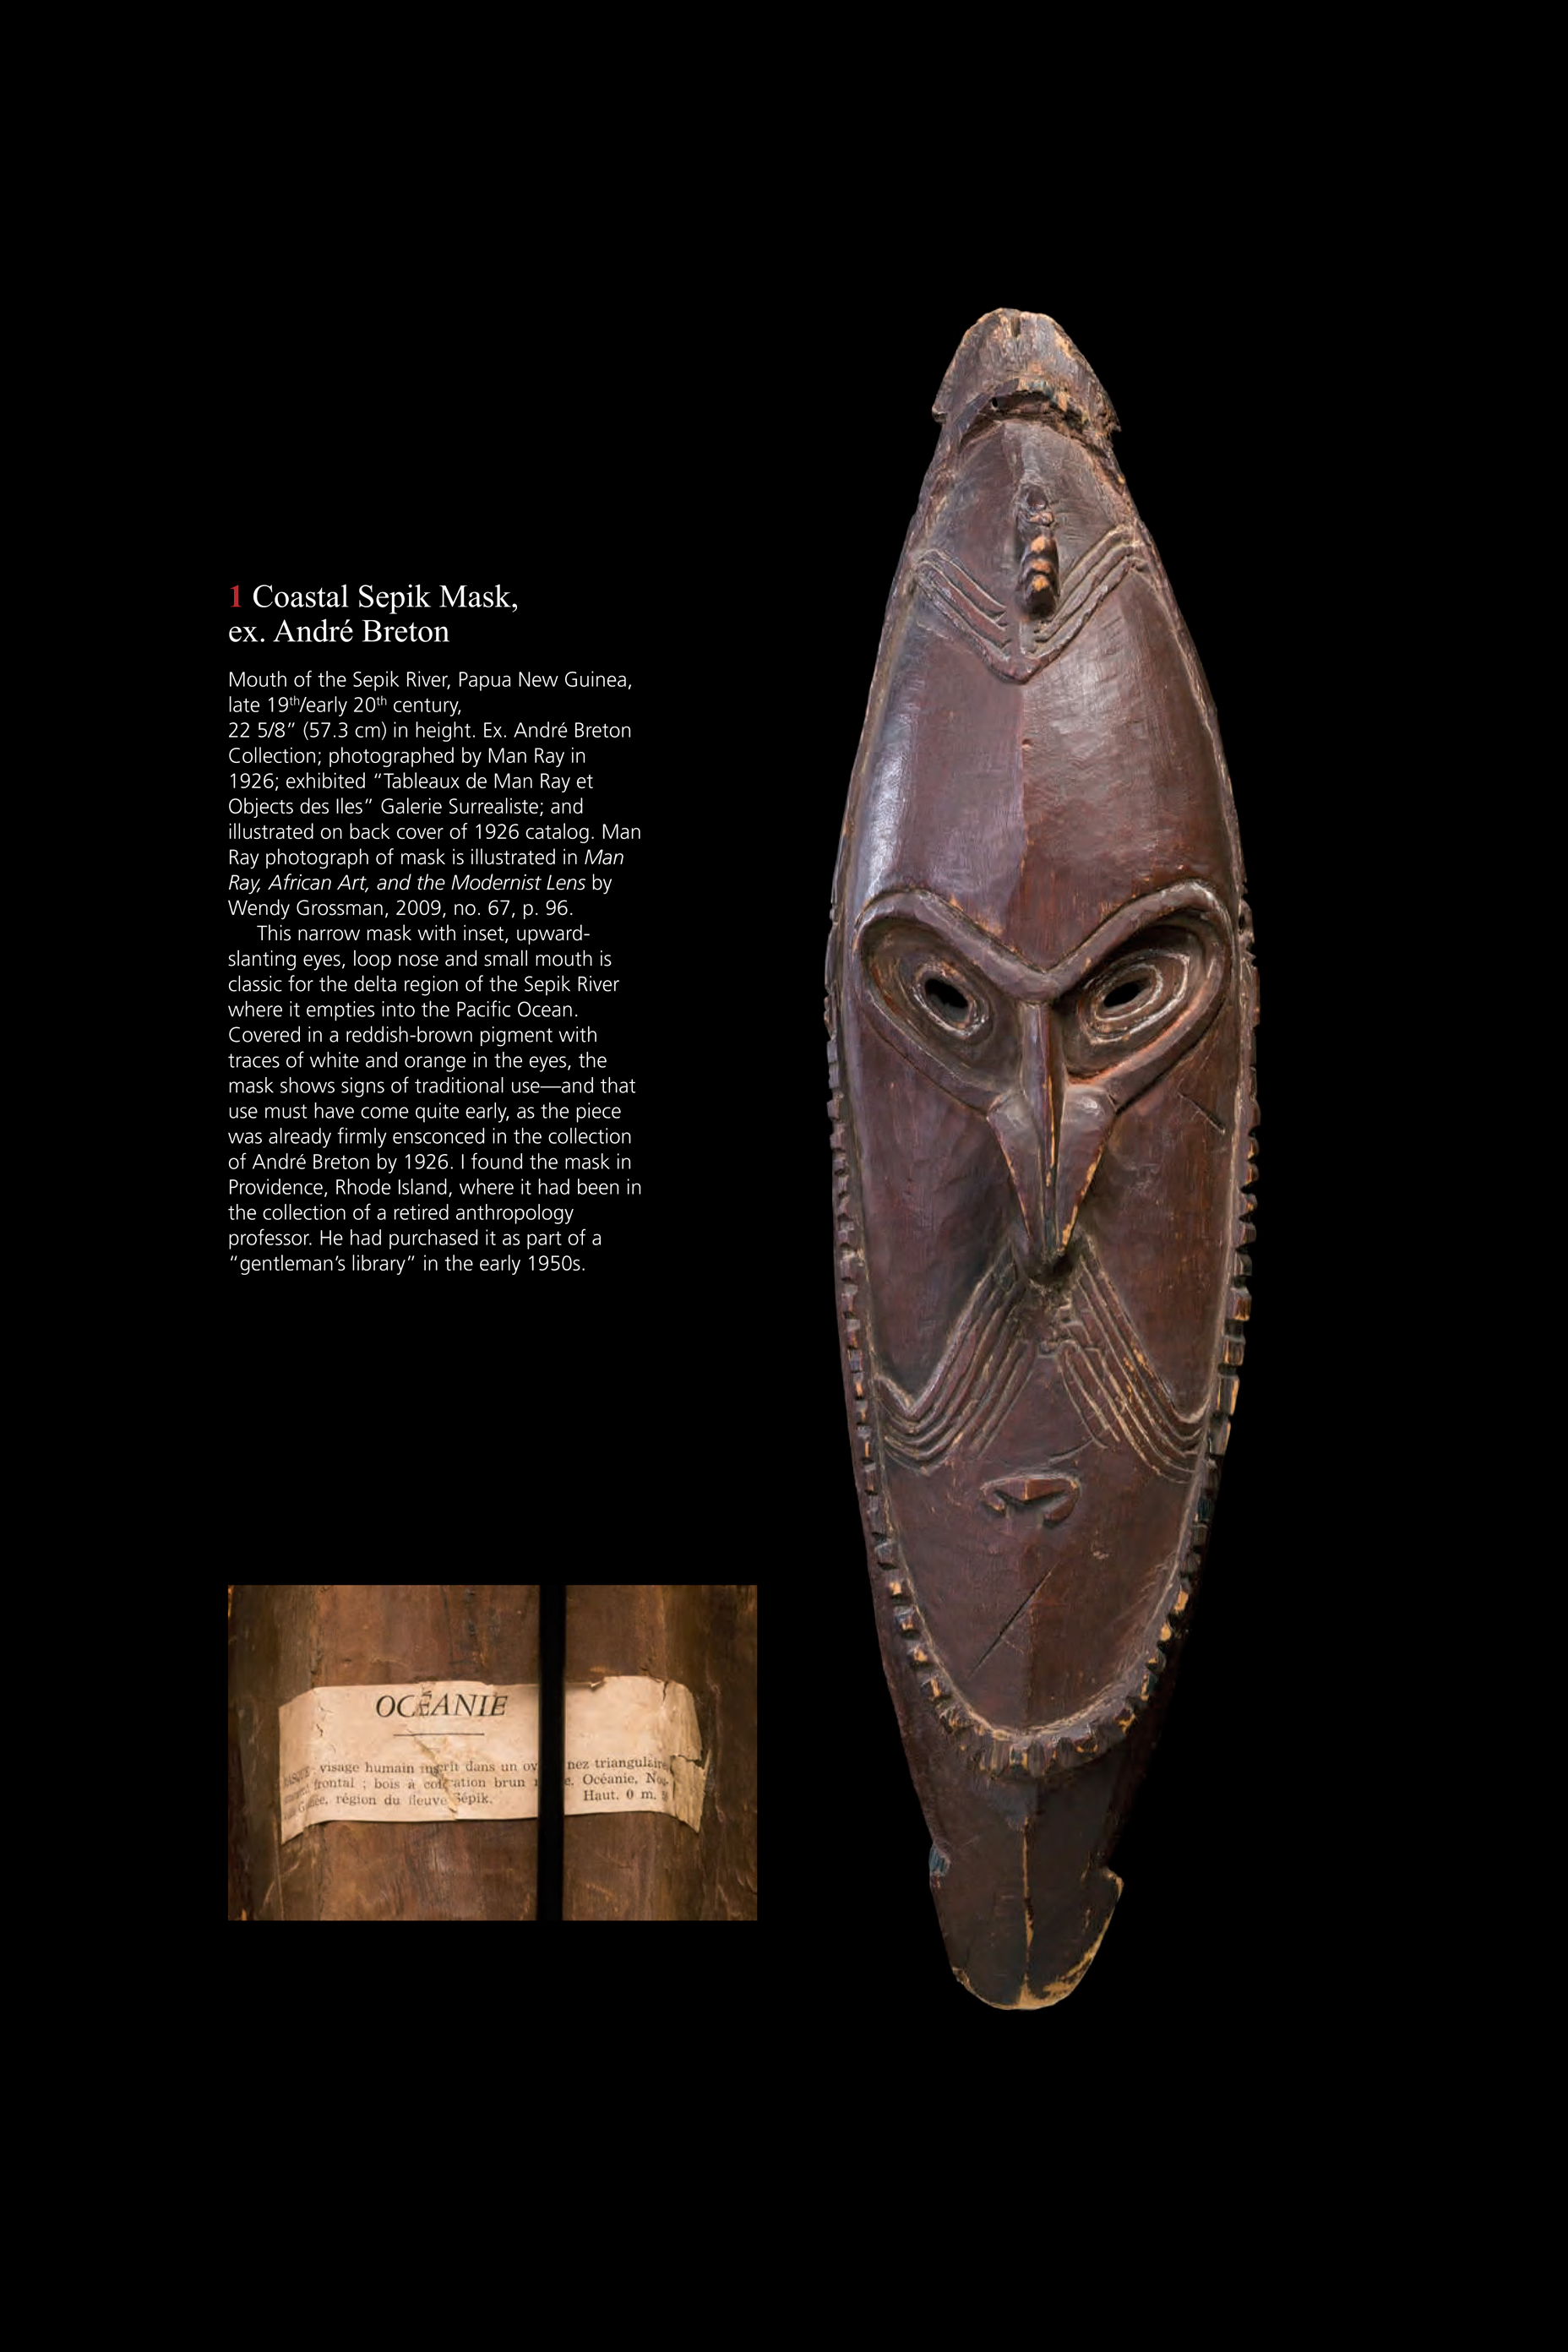 Oceanic Art Paris 2013 New Guinea & Polynesian Art